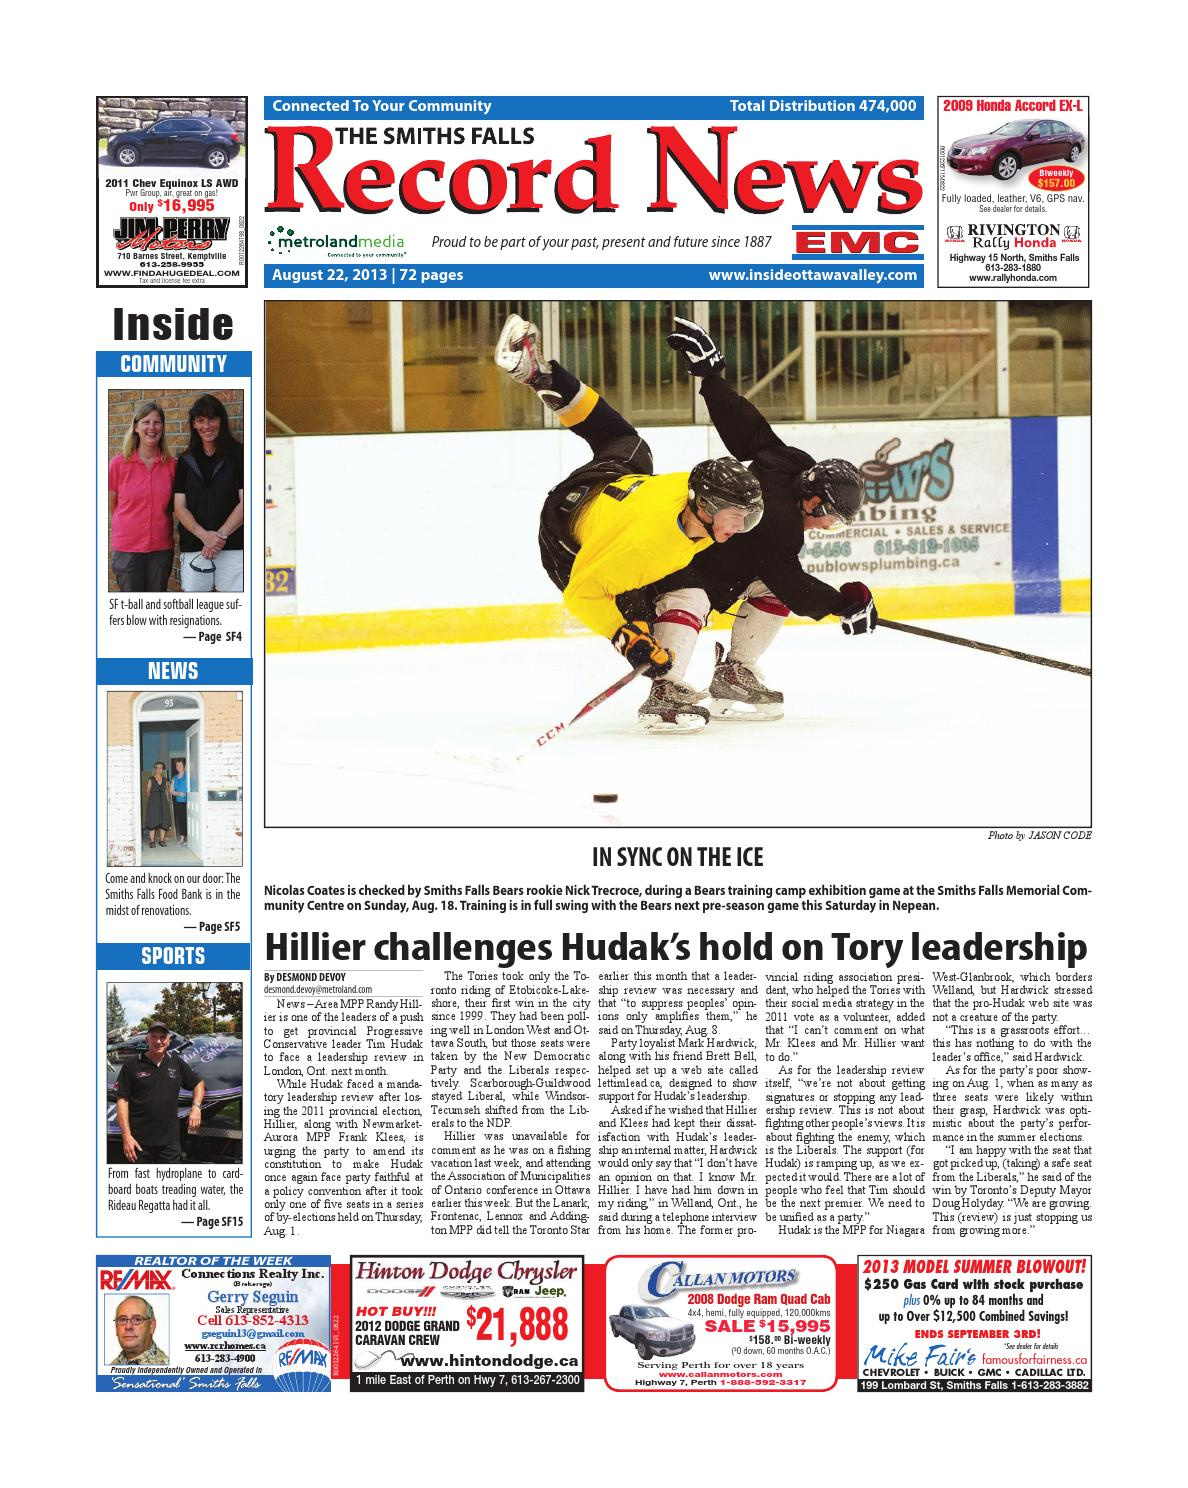 83b8b5cbb4f Smithsfalls082213 by Metroland East - Smiths Falls Record News - issuu